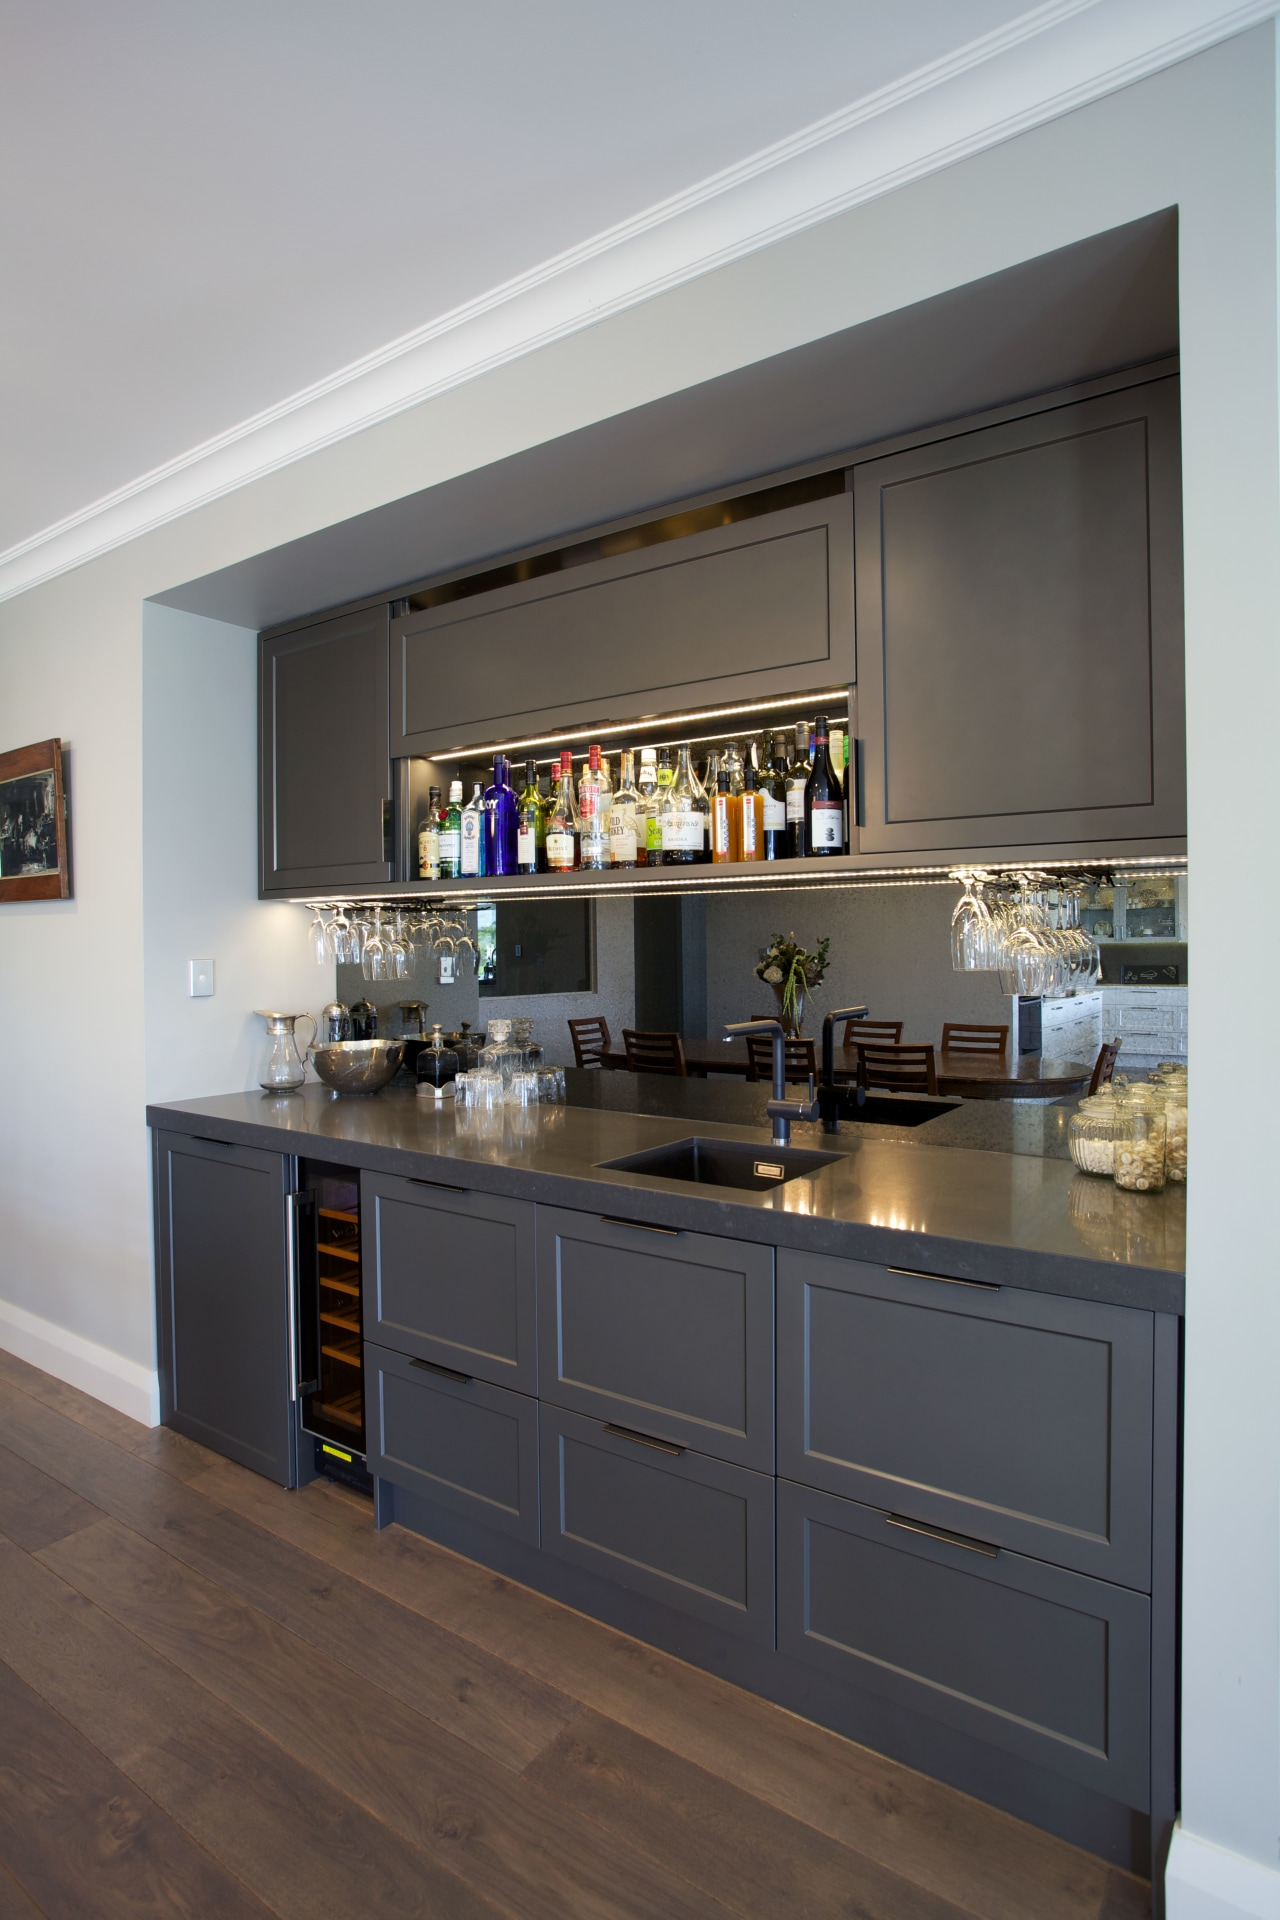 A mirror splashback and uniform grey tones give cabinetry, countertop, cuisine classique, home appliance, interior design, kitchen, room, gray, black